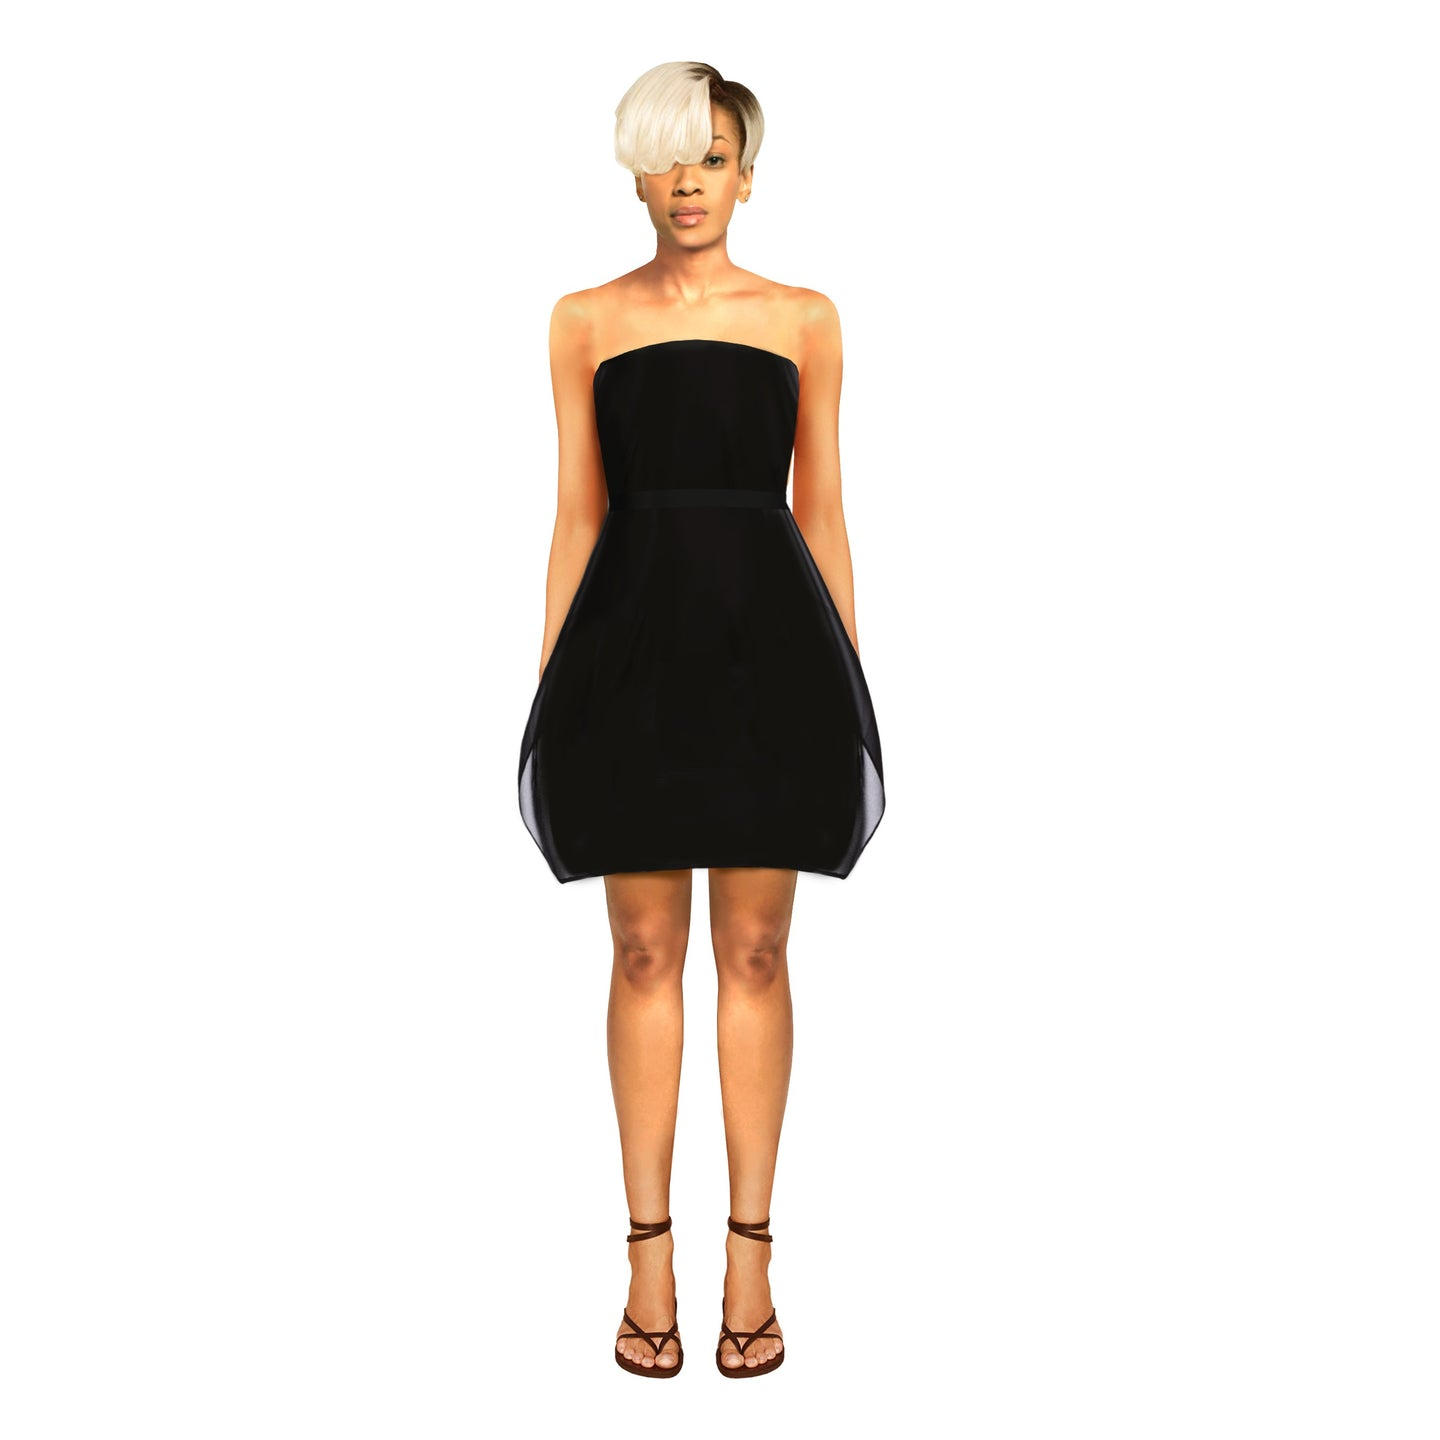 Leban Dress by House of Perris is a minimal layered little black dress.